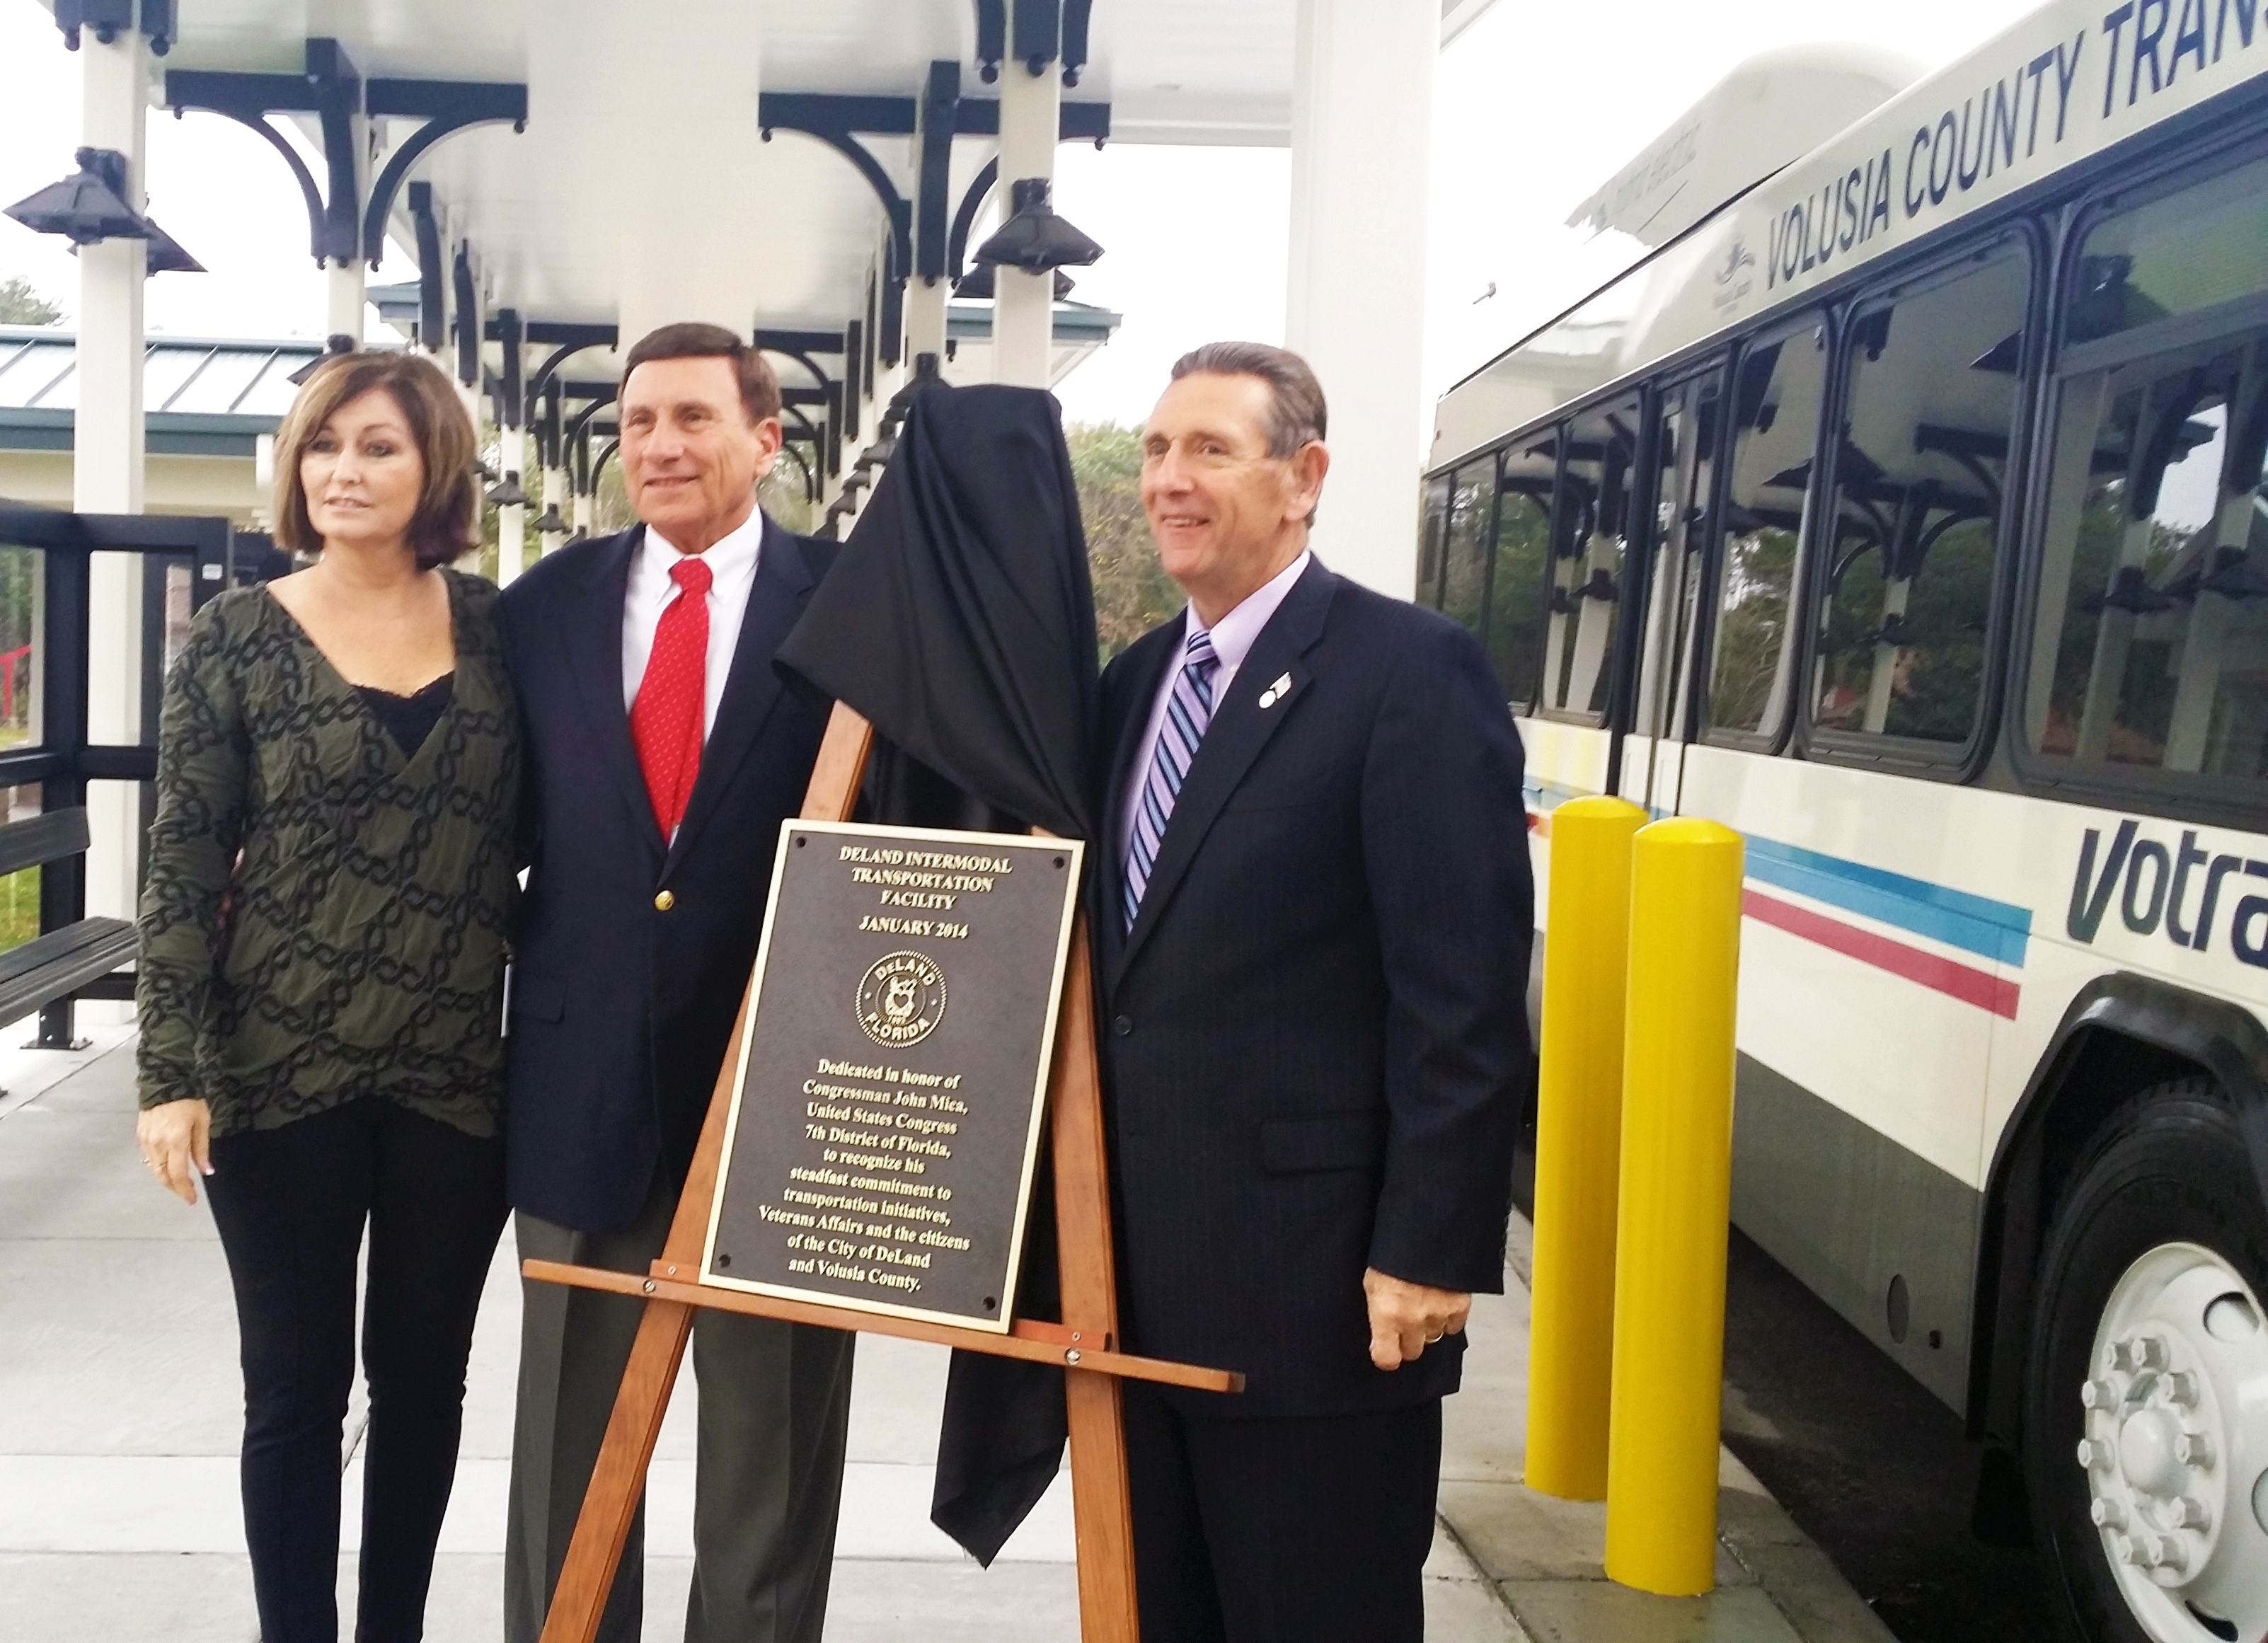 Dedication in honor of Congressman John Mica